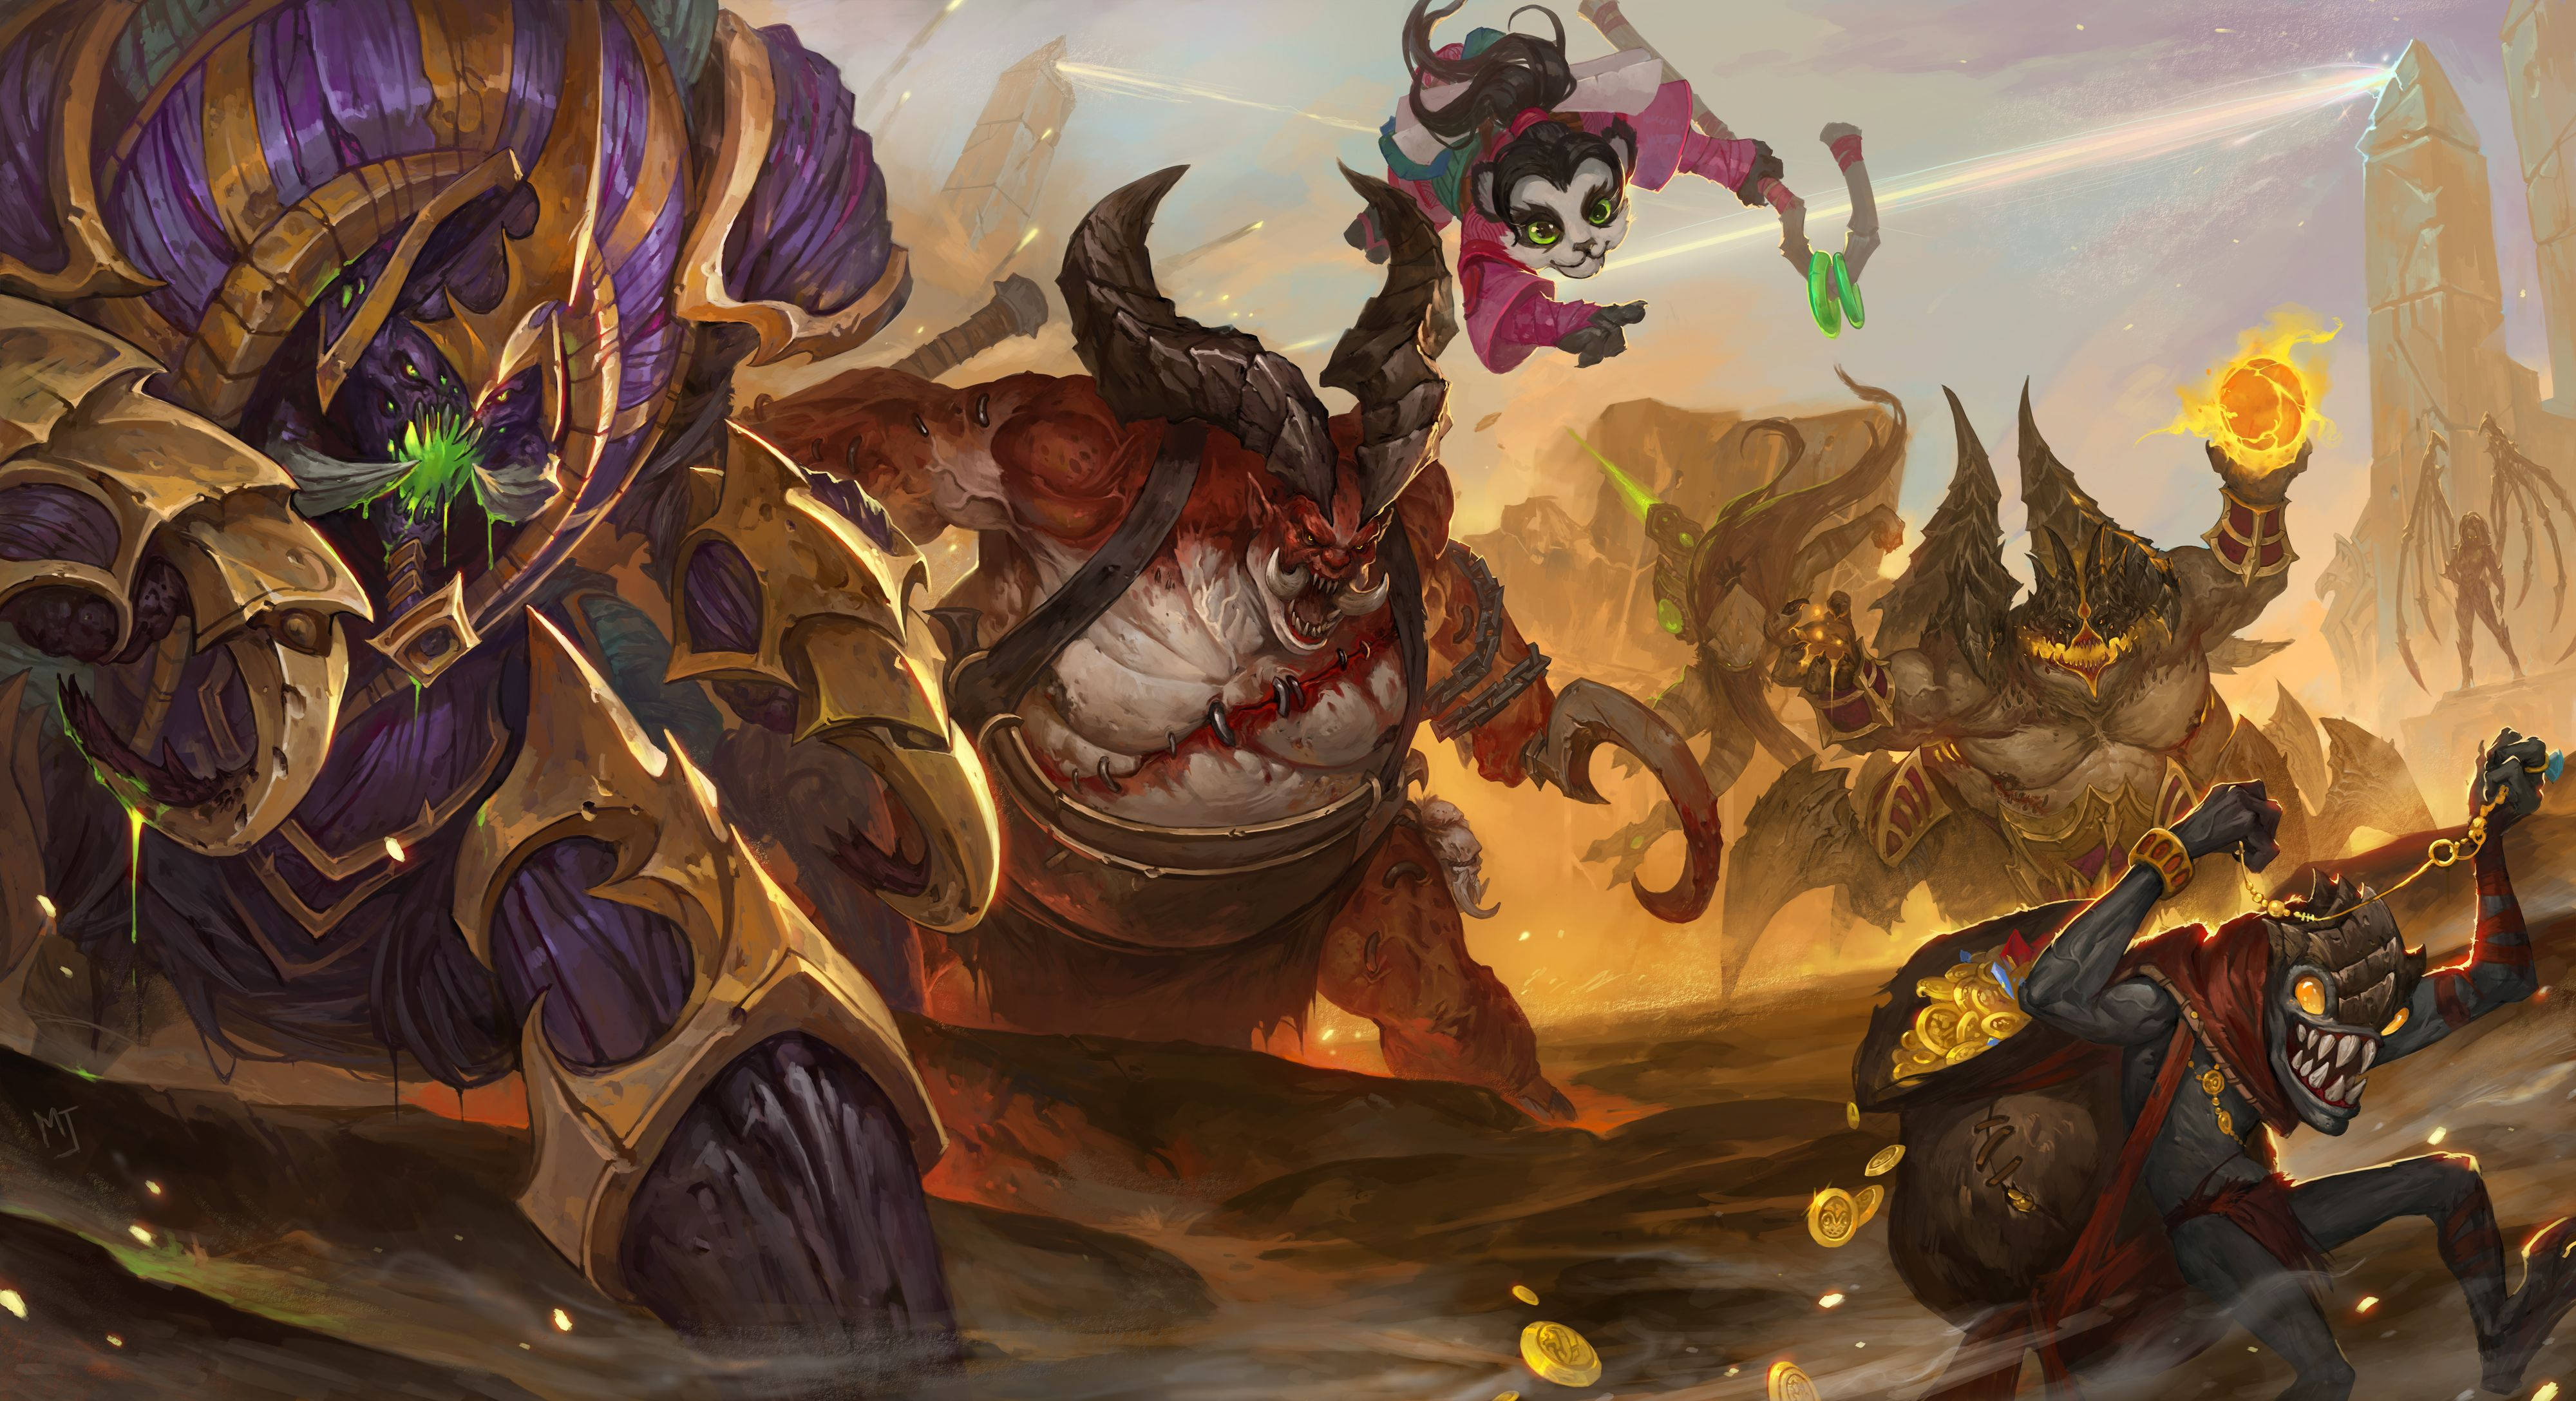 Catch The Goblin Heroes Of The Storm By Alswns3421 Deviantart